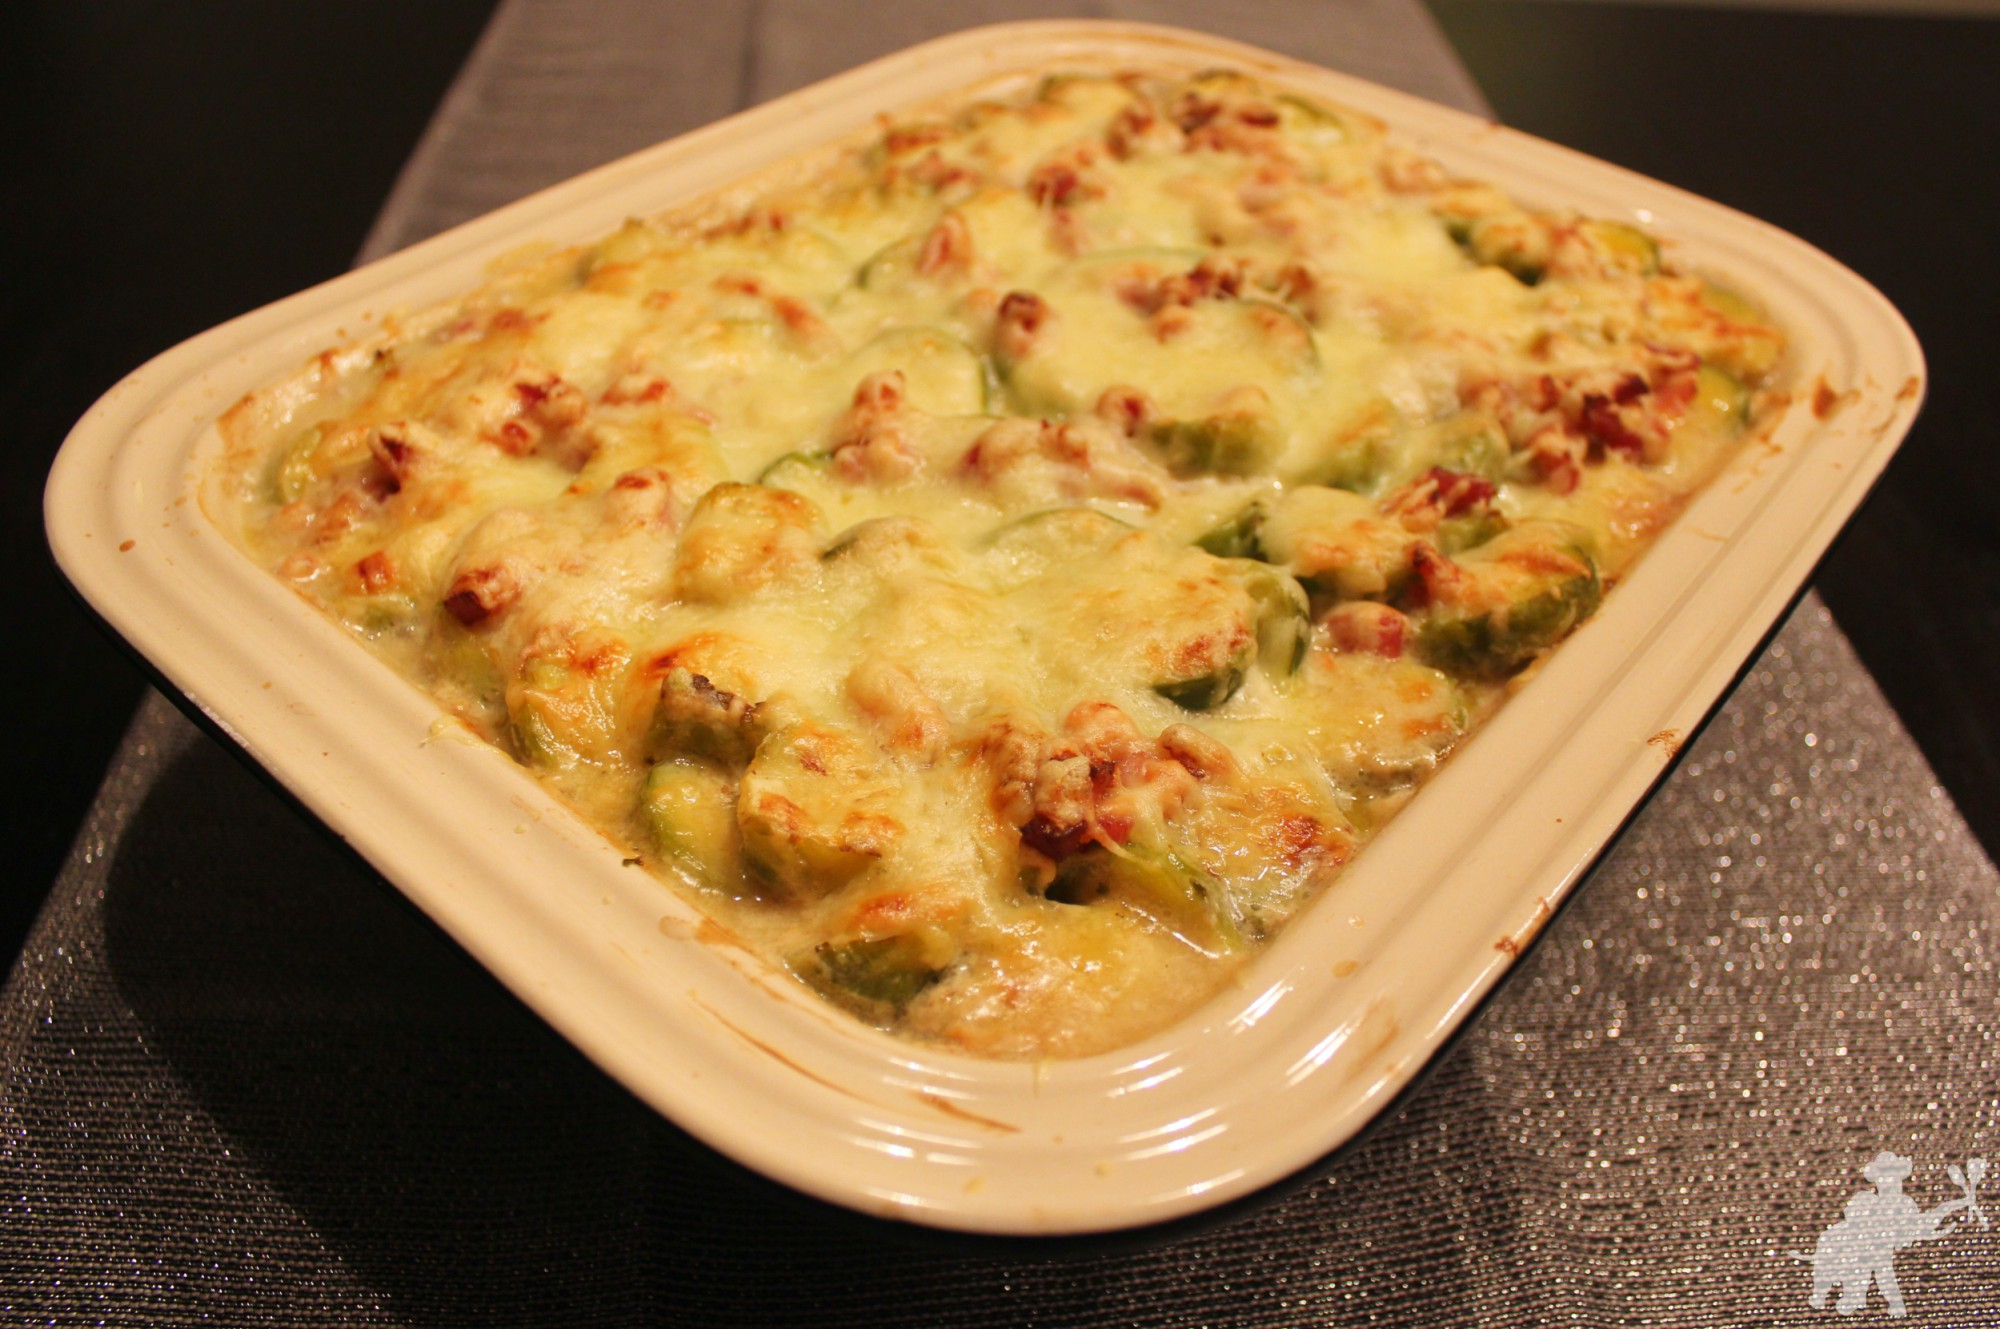 Brussels sprout and potato gratin 3